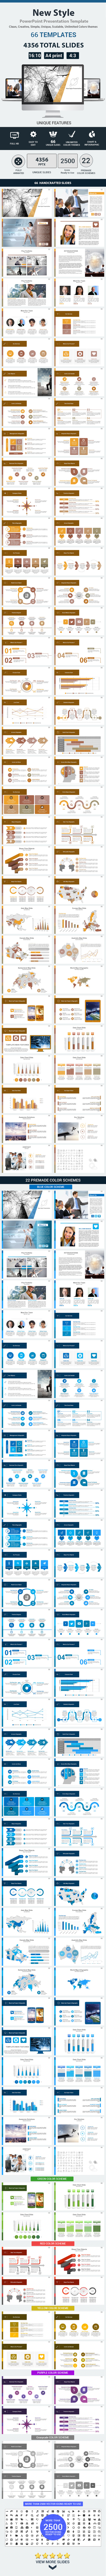 New Style PowerPoint Presentation Template